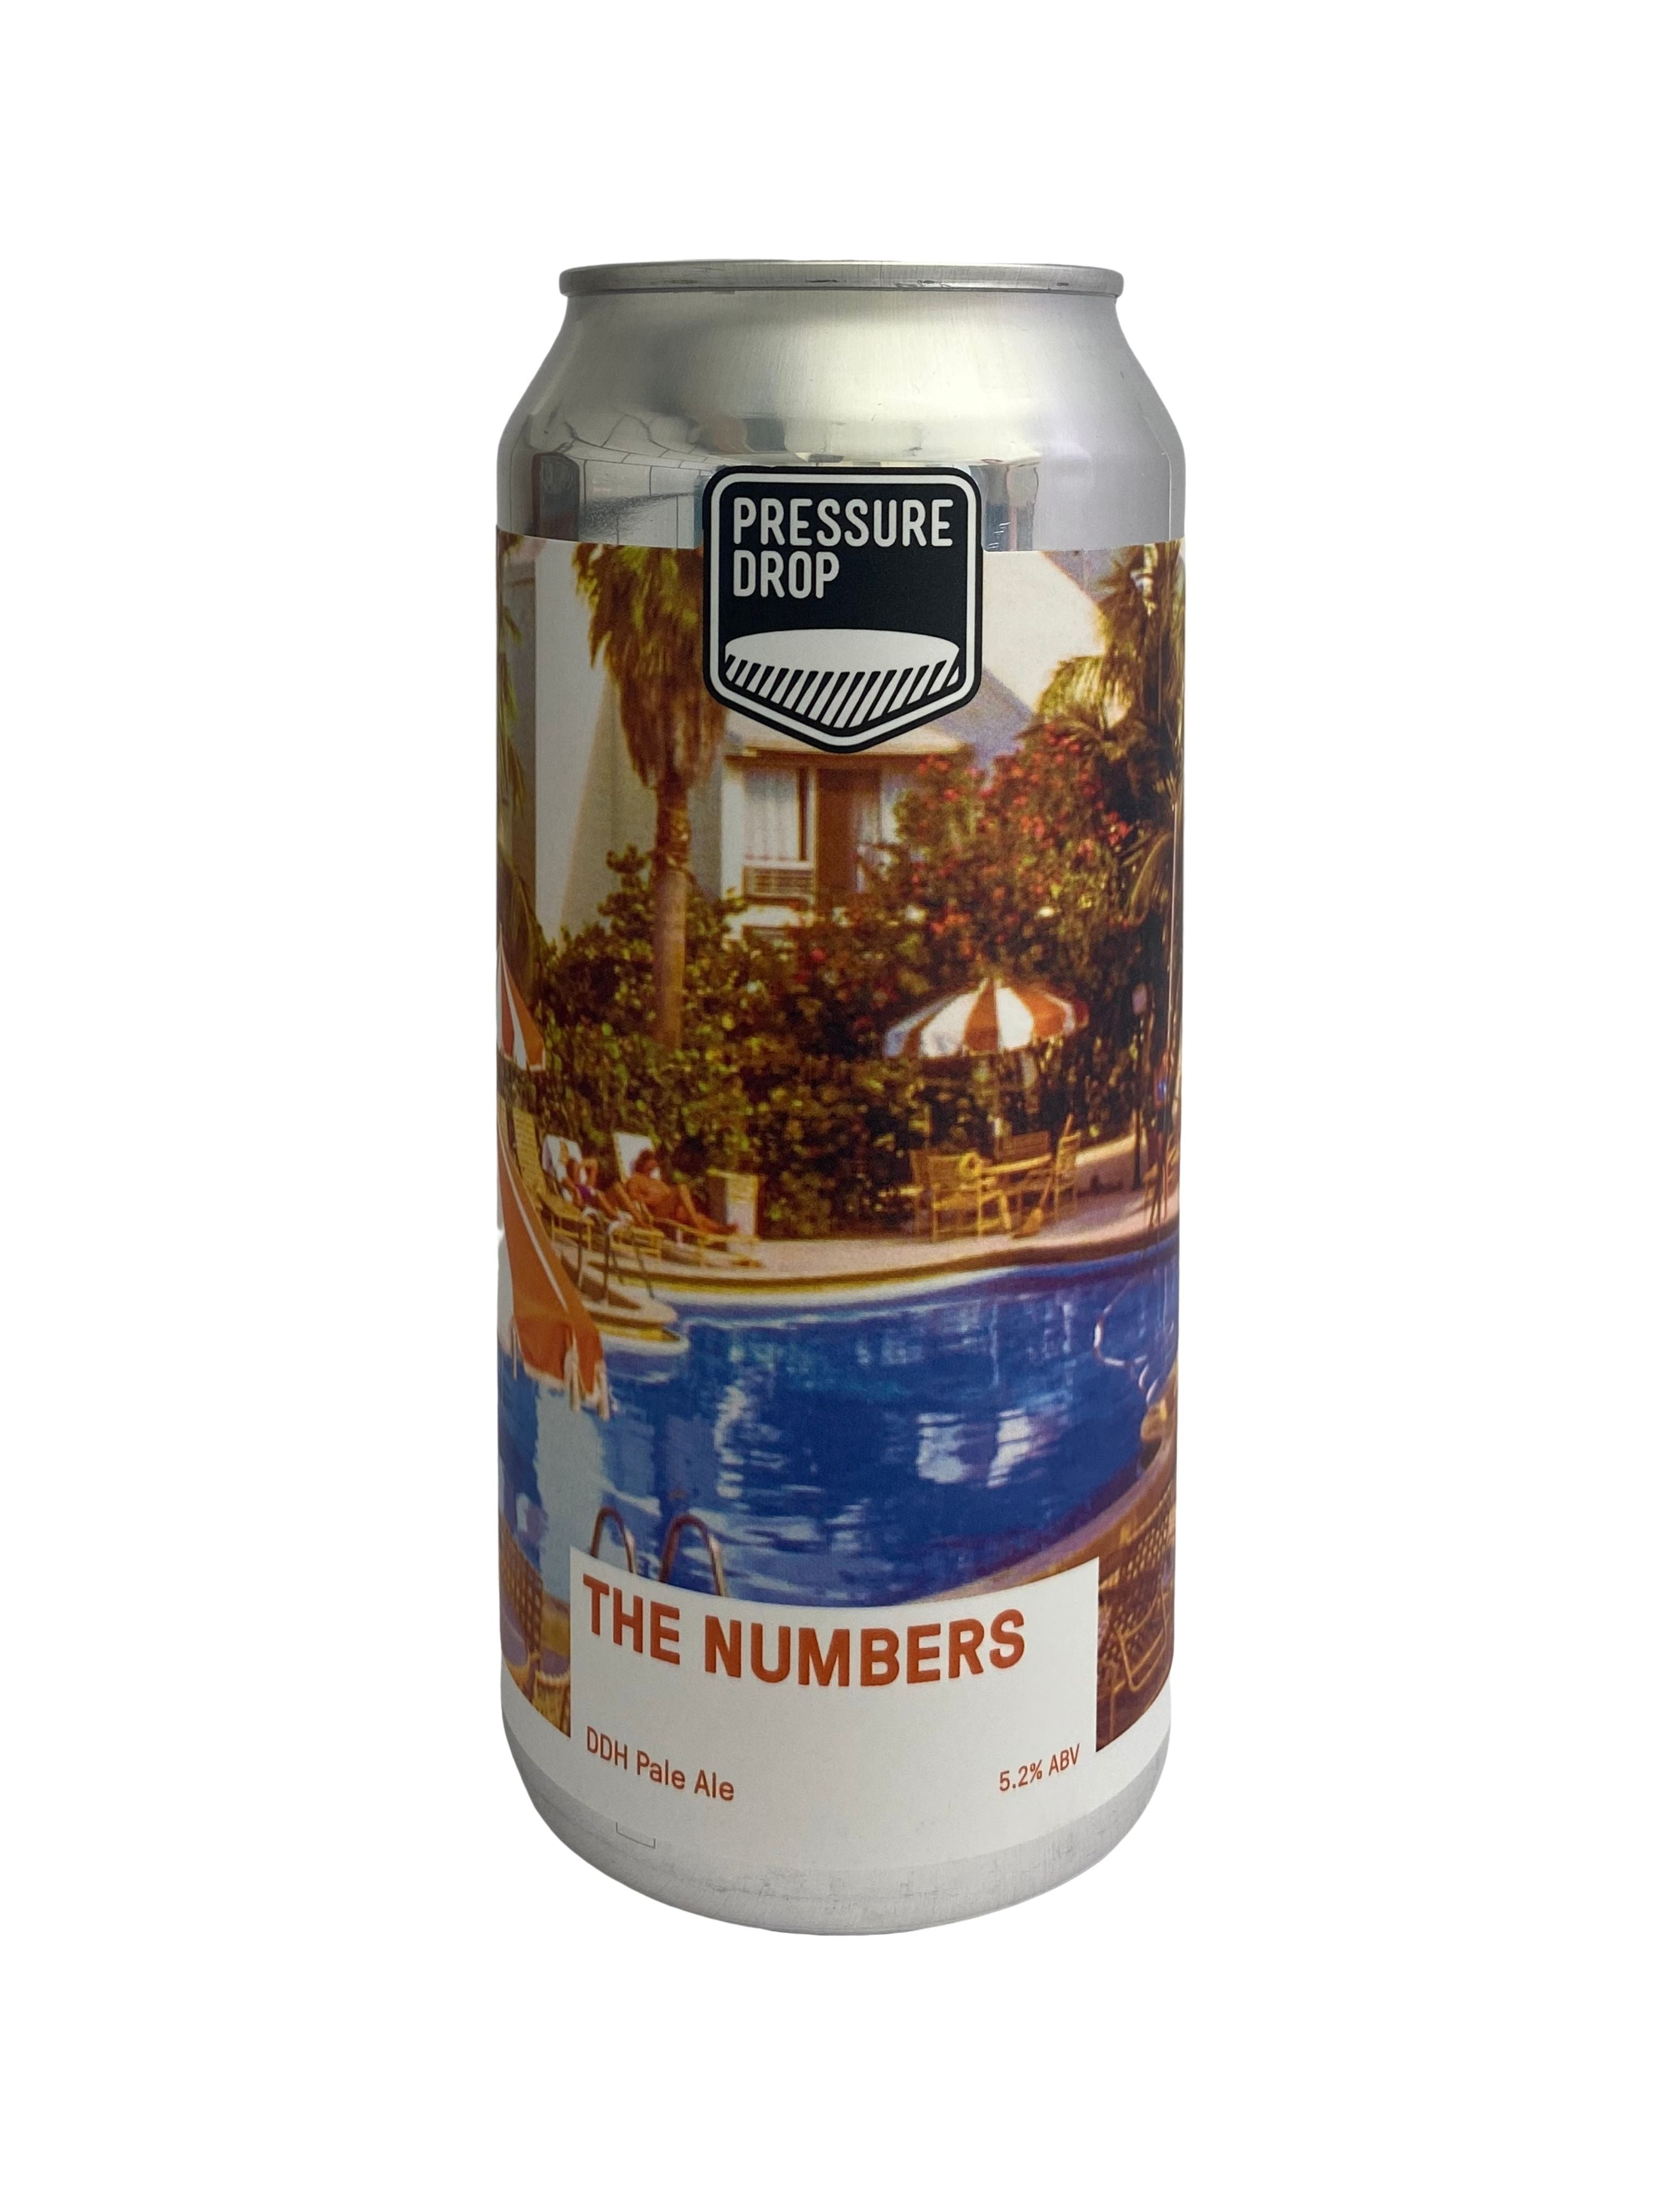 Pressure Drop - The Numbers - Pale Ale - 5.2% (3.91 UT)